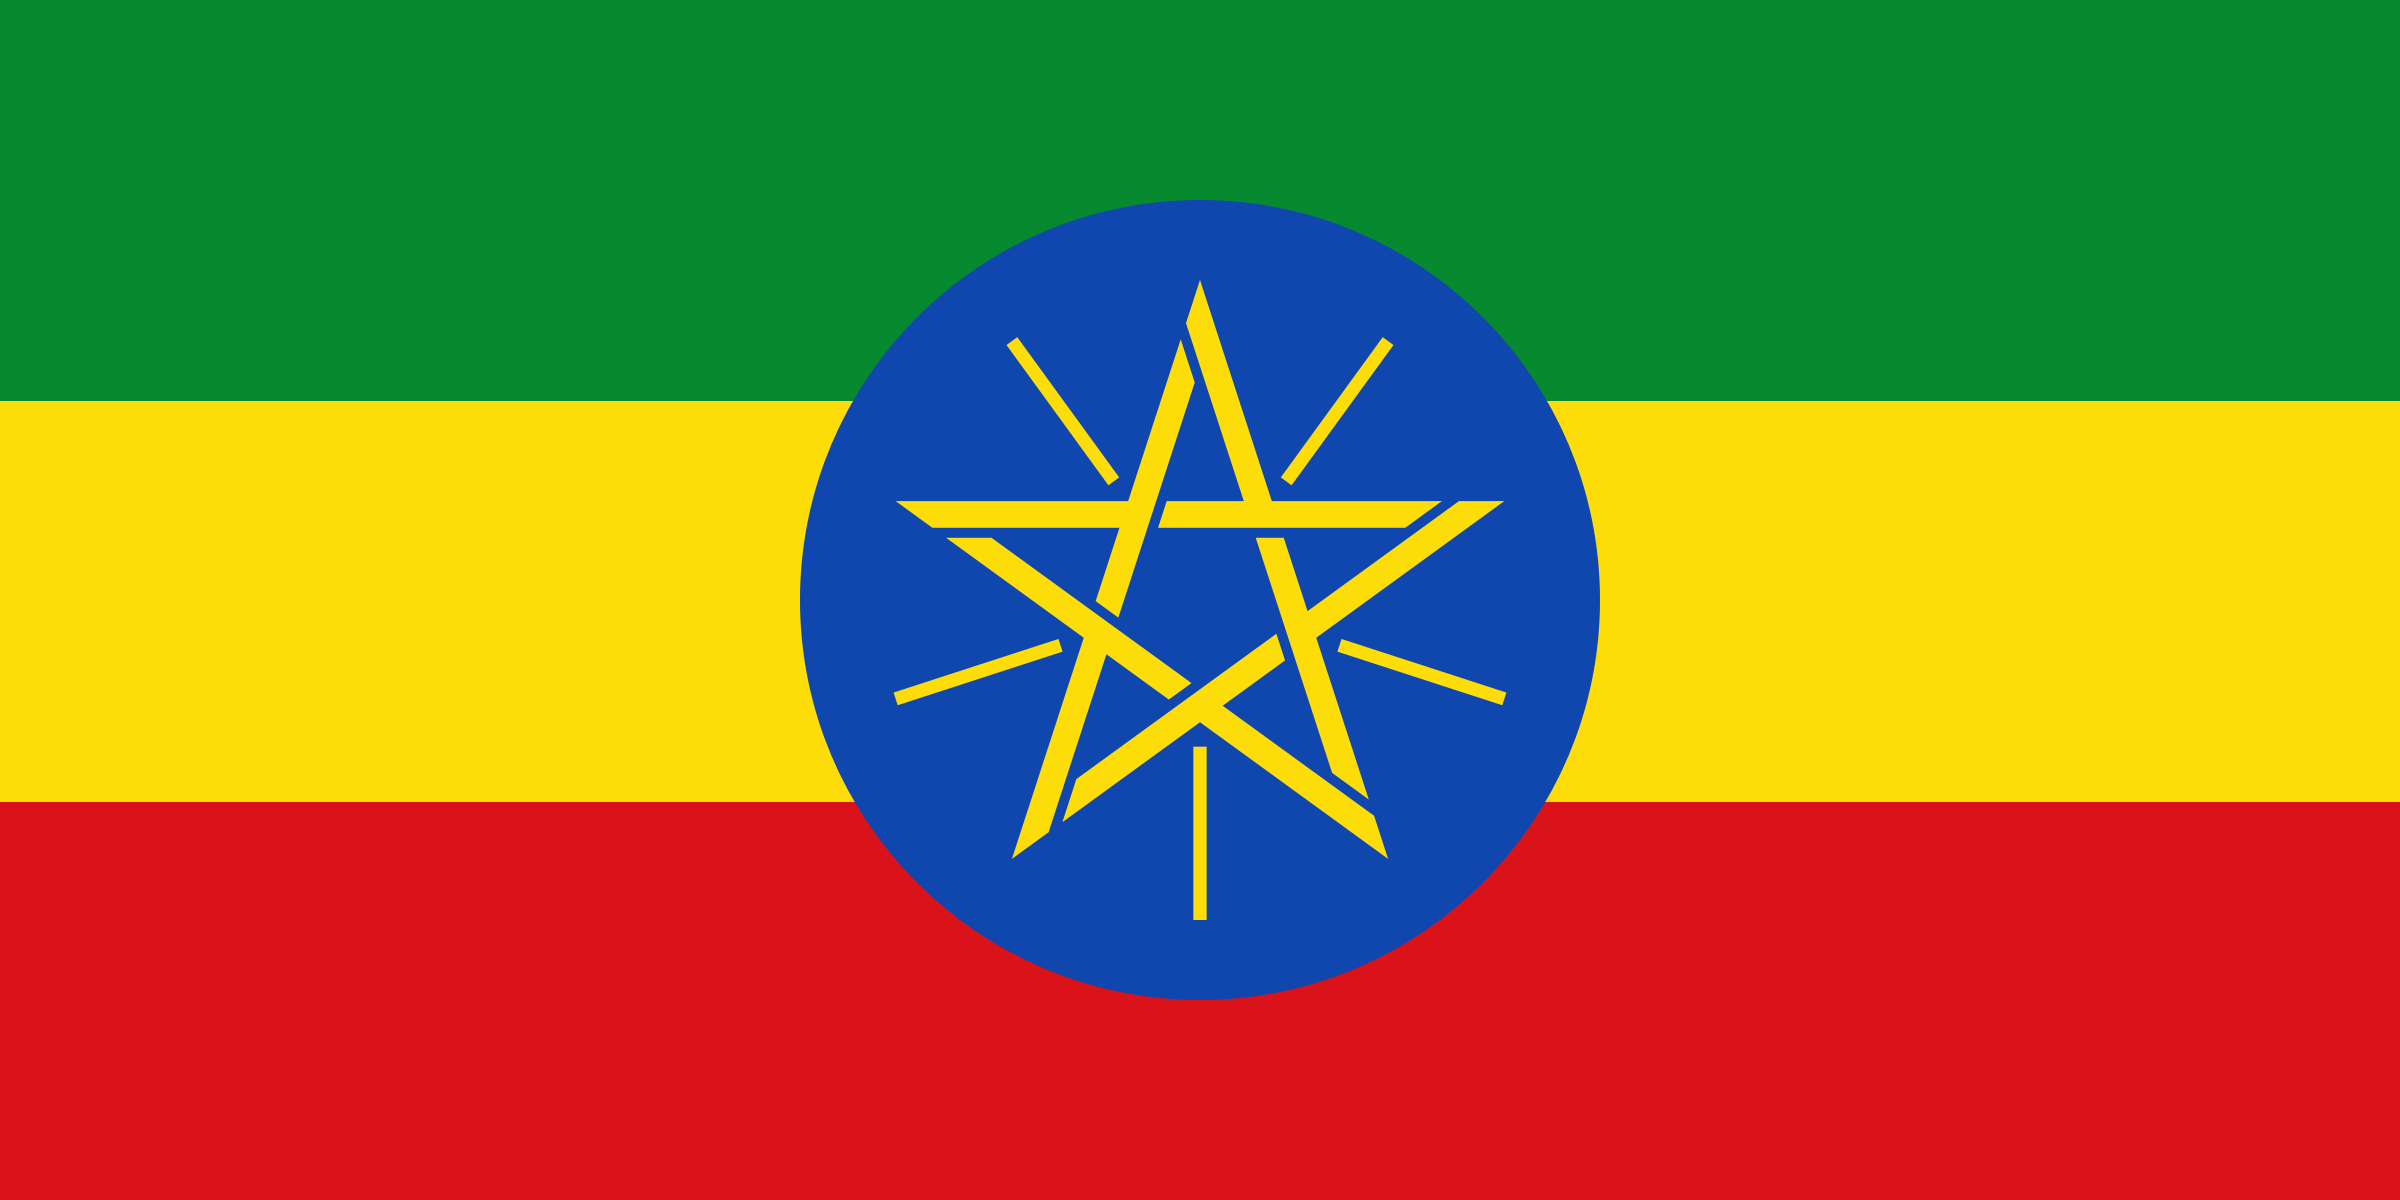 The Ethiopia Flag by AdamStanislav